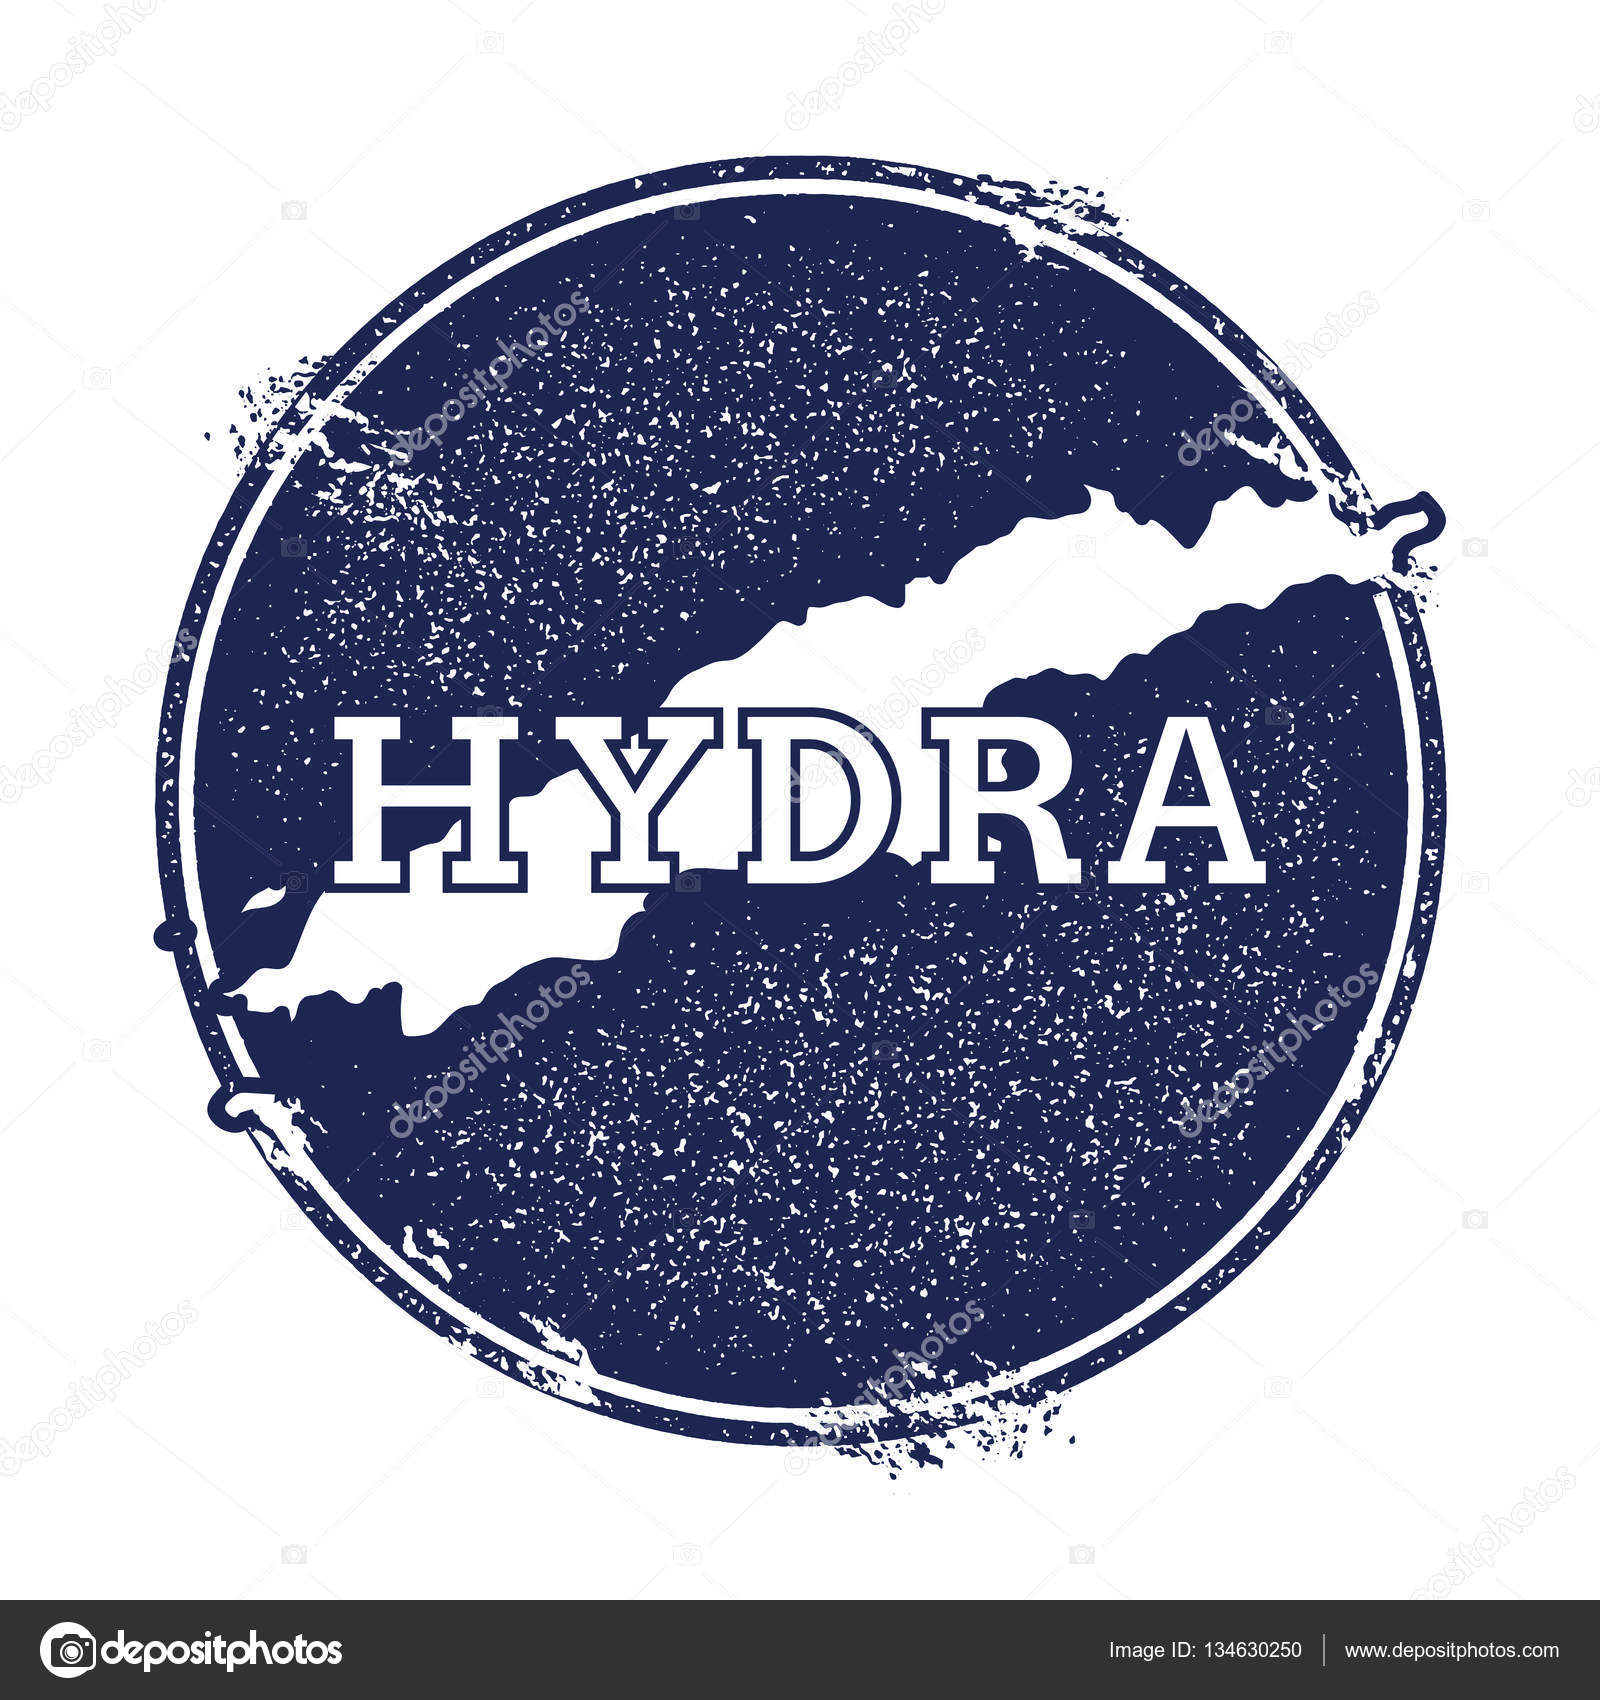 Hydra vector map Grunge rubber stamp with the name and map